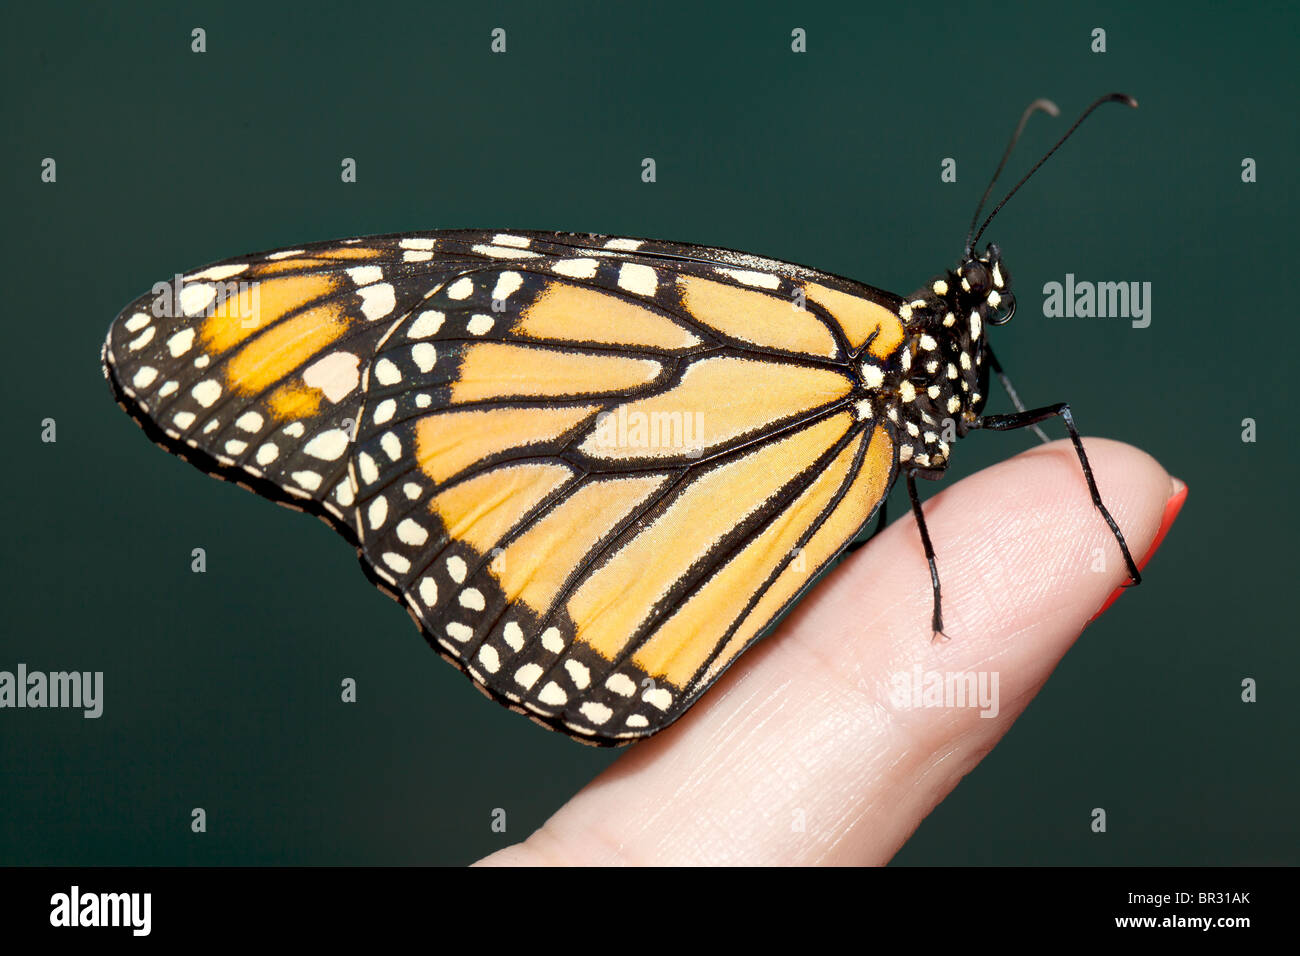 f3b372eb5 Butterfly On Finger Stock Photos & Butterfly On Finger Stock Images ...